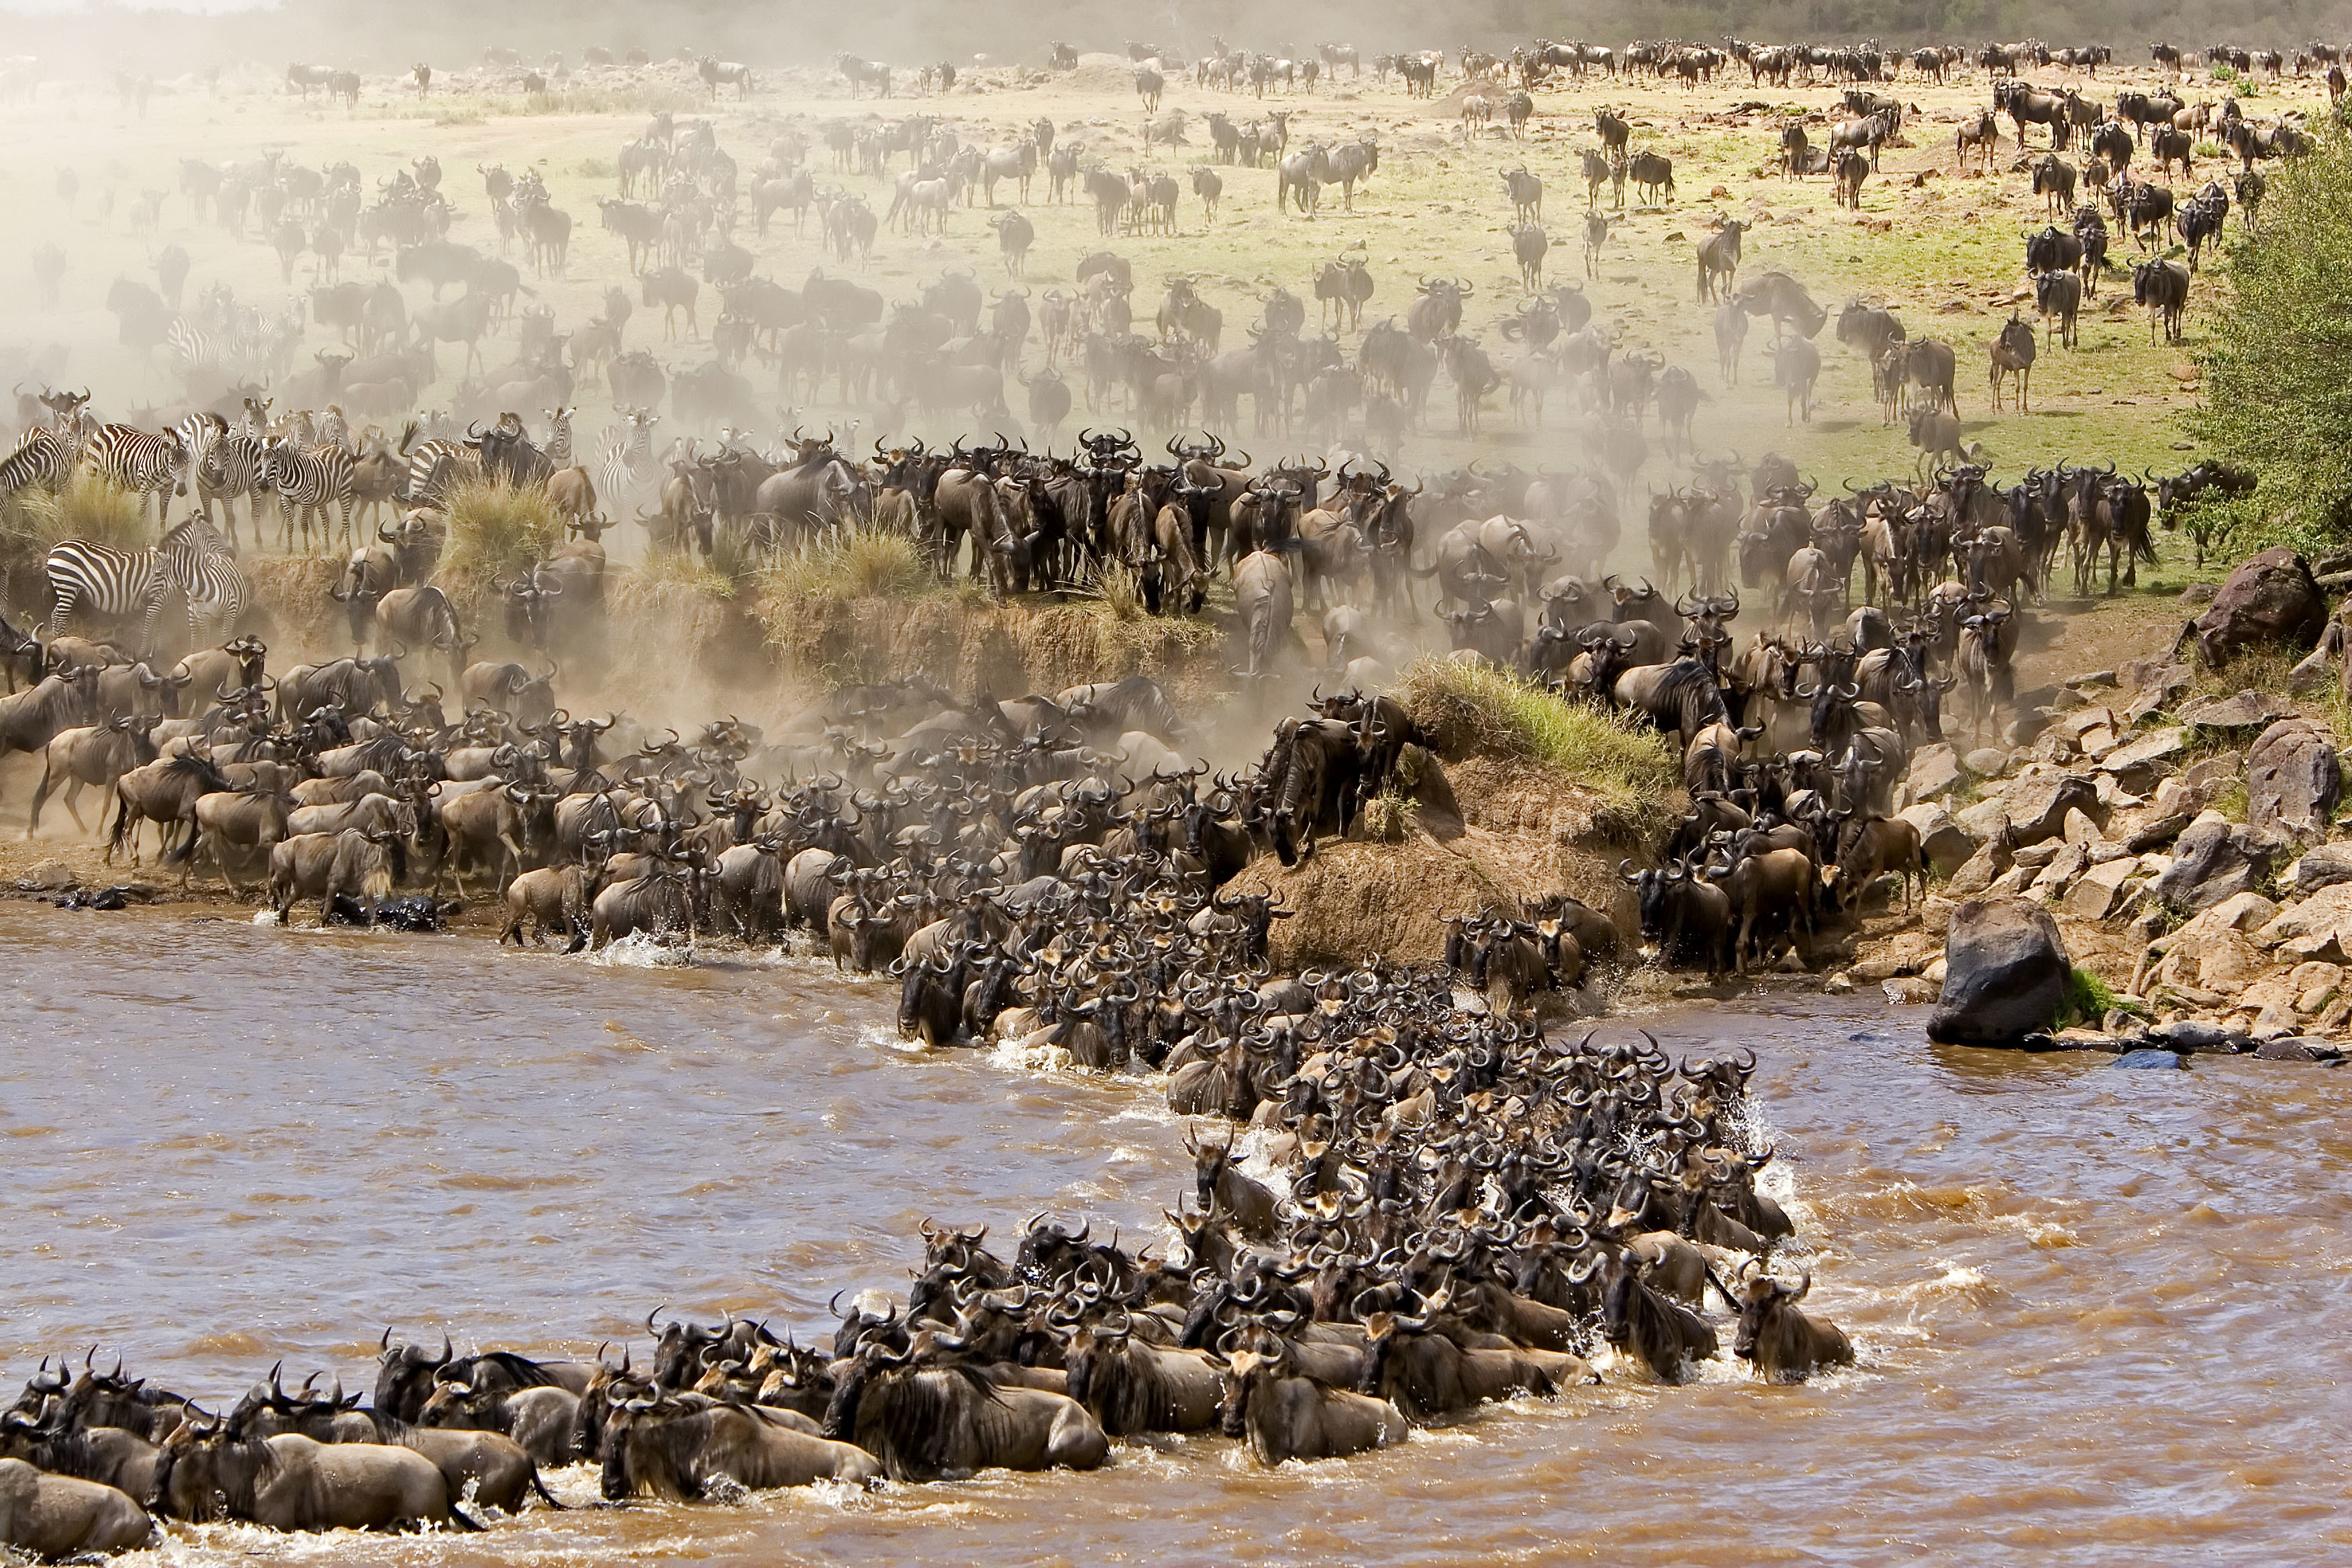 Facts about Maasai Mara National Reserve